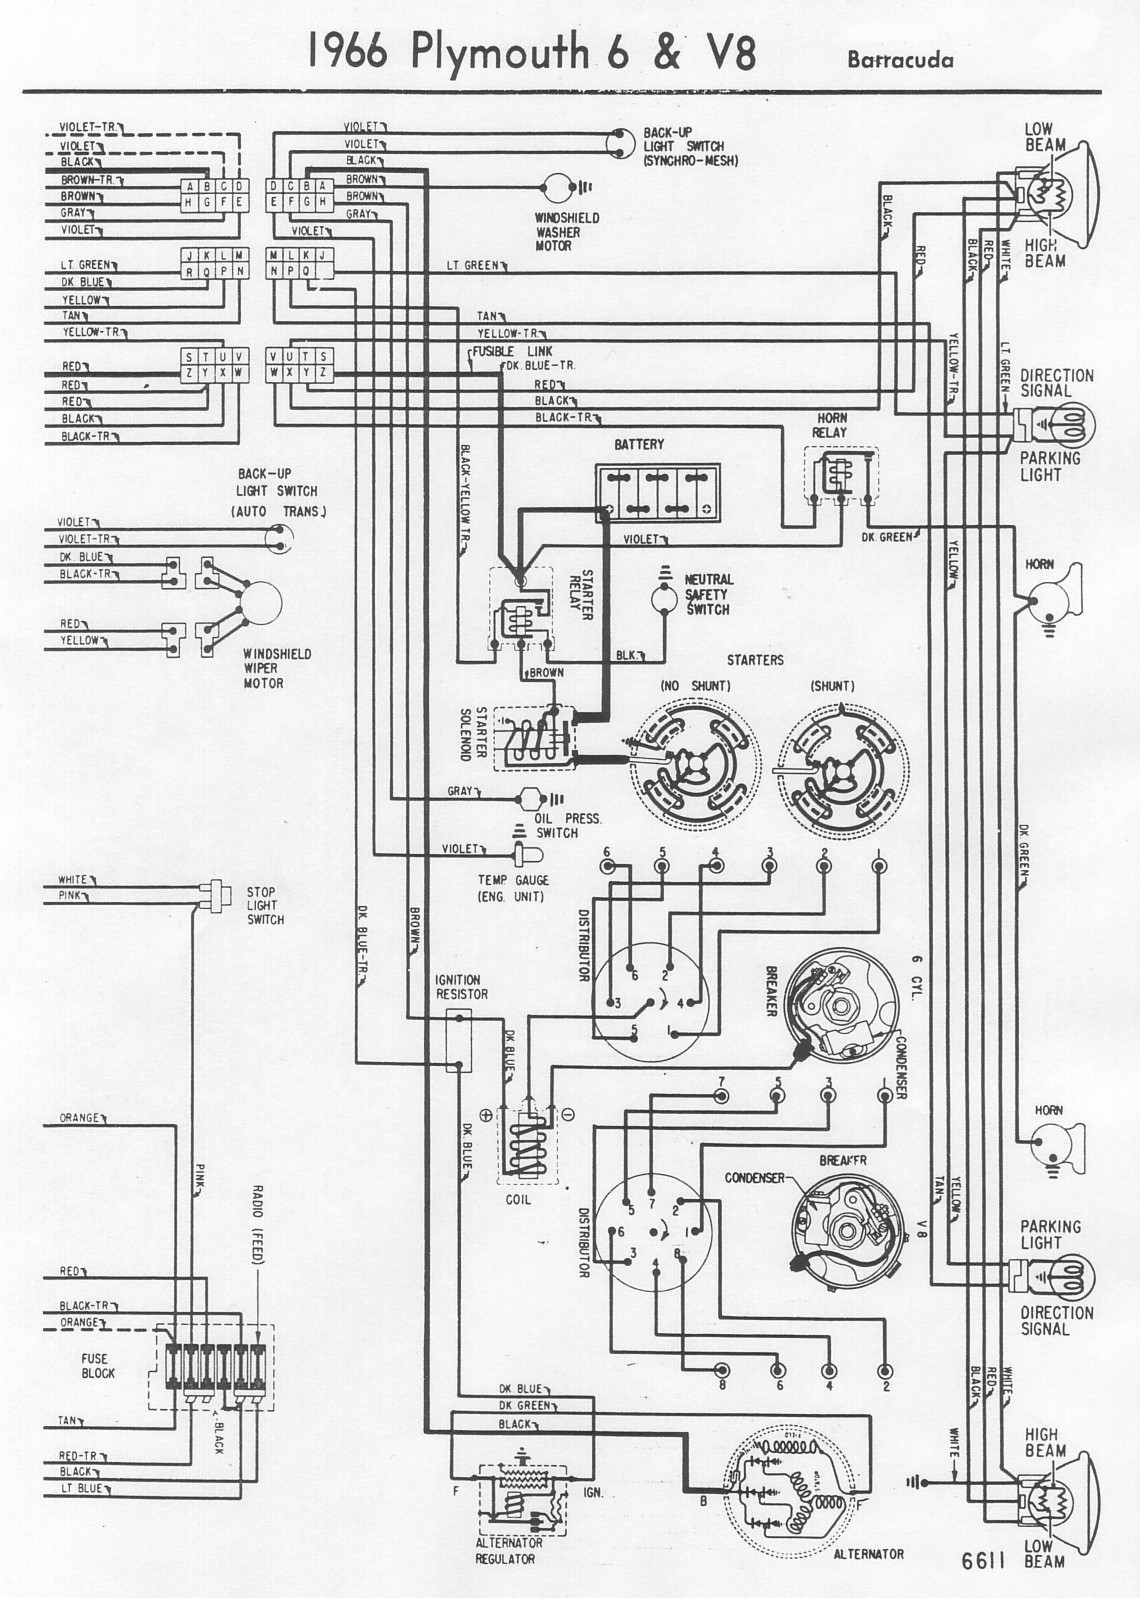 Ford Wiring Diagram Fully Laminated Poster as well Dodge Aspen moreover AMC Javelin besides 440 Dodge Engine Diagram as well 8tulz Ford Fairlane 500xl 67 Fairlane When Press. on 1966 dodge coronet wiring diagram